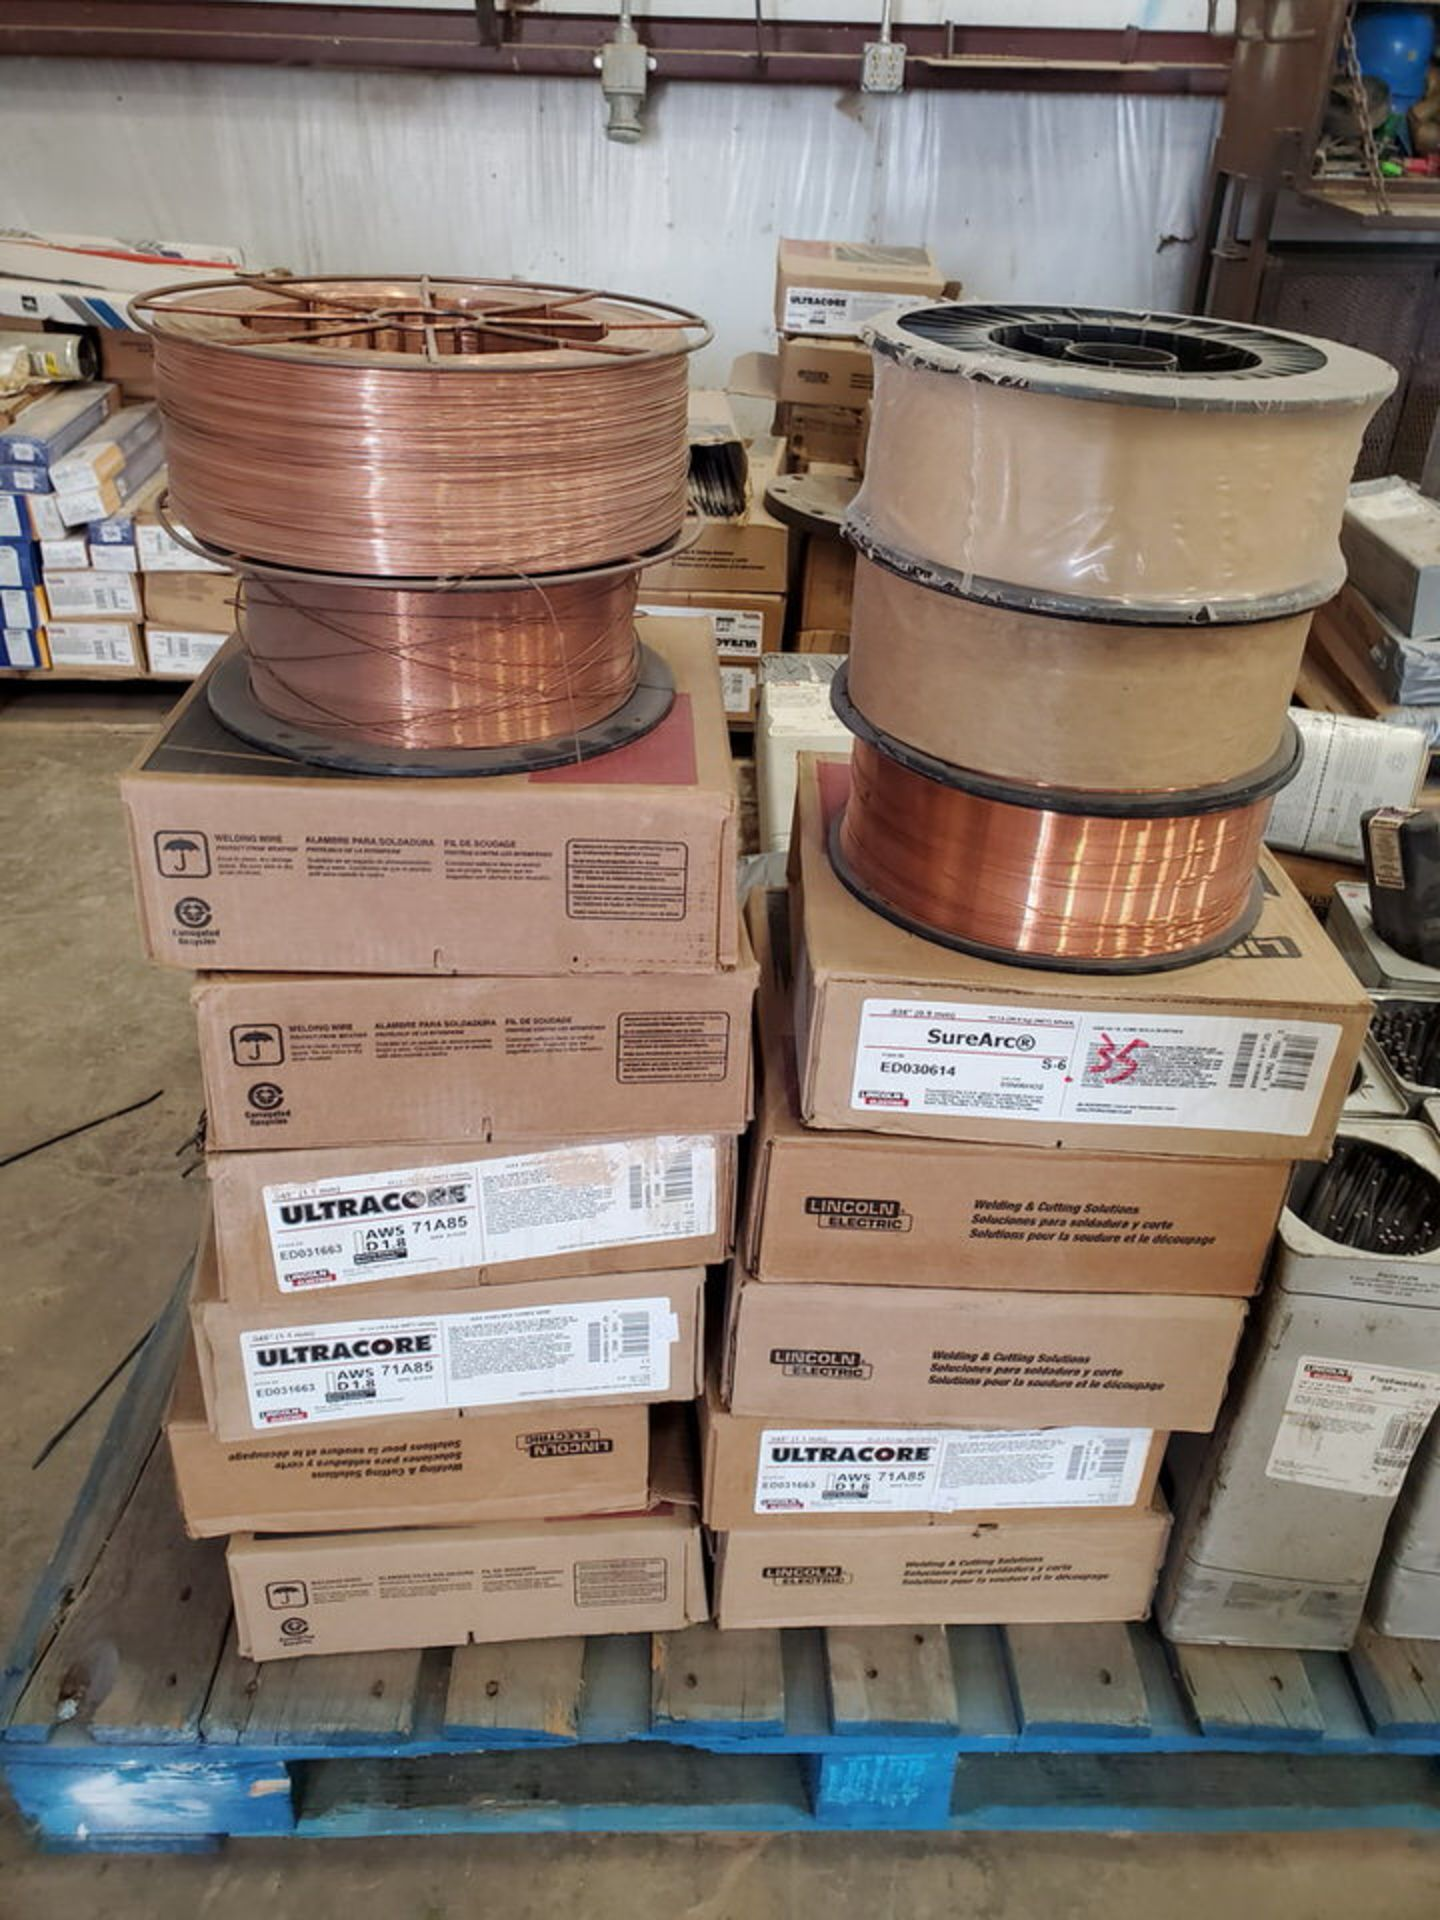 "LE & Radnor, etc. Assorted Welding Rods & Cored Spool Wire Size Range: 3/16"" x 12"" - 3/16"" 14"" - Image 9 of 12"